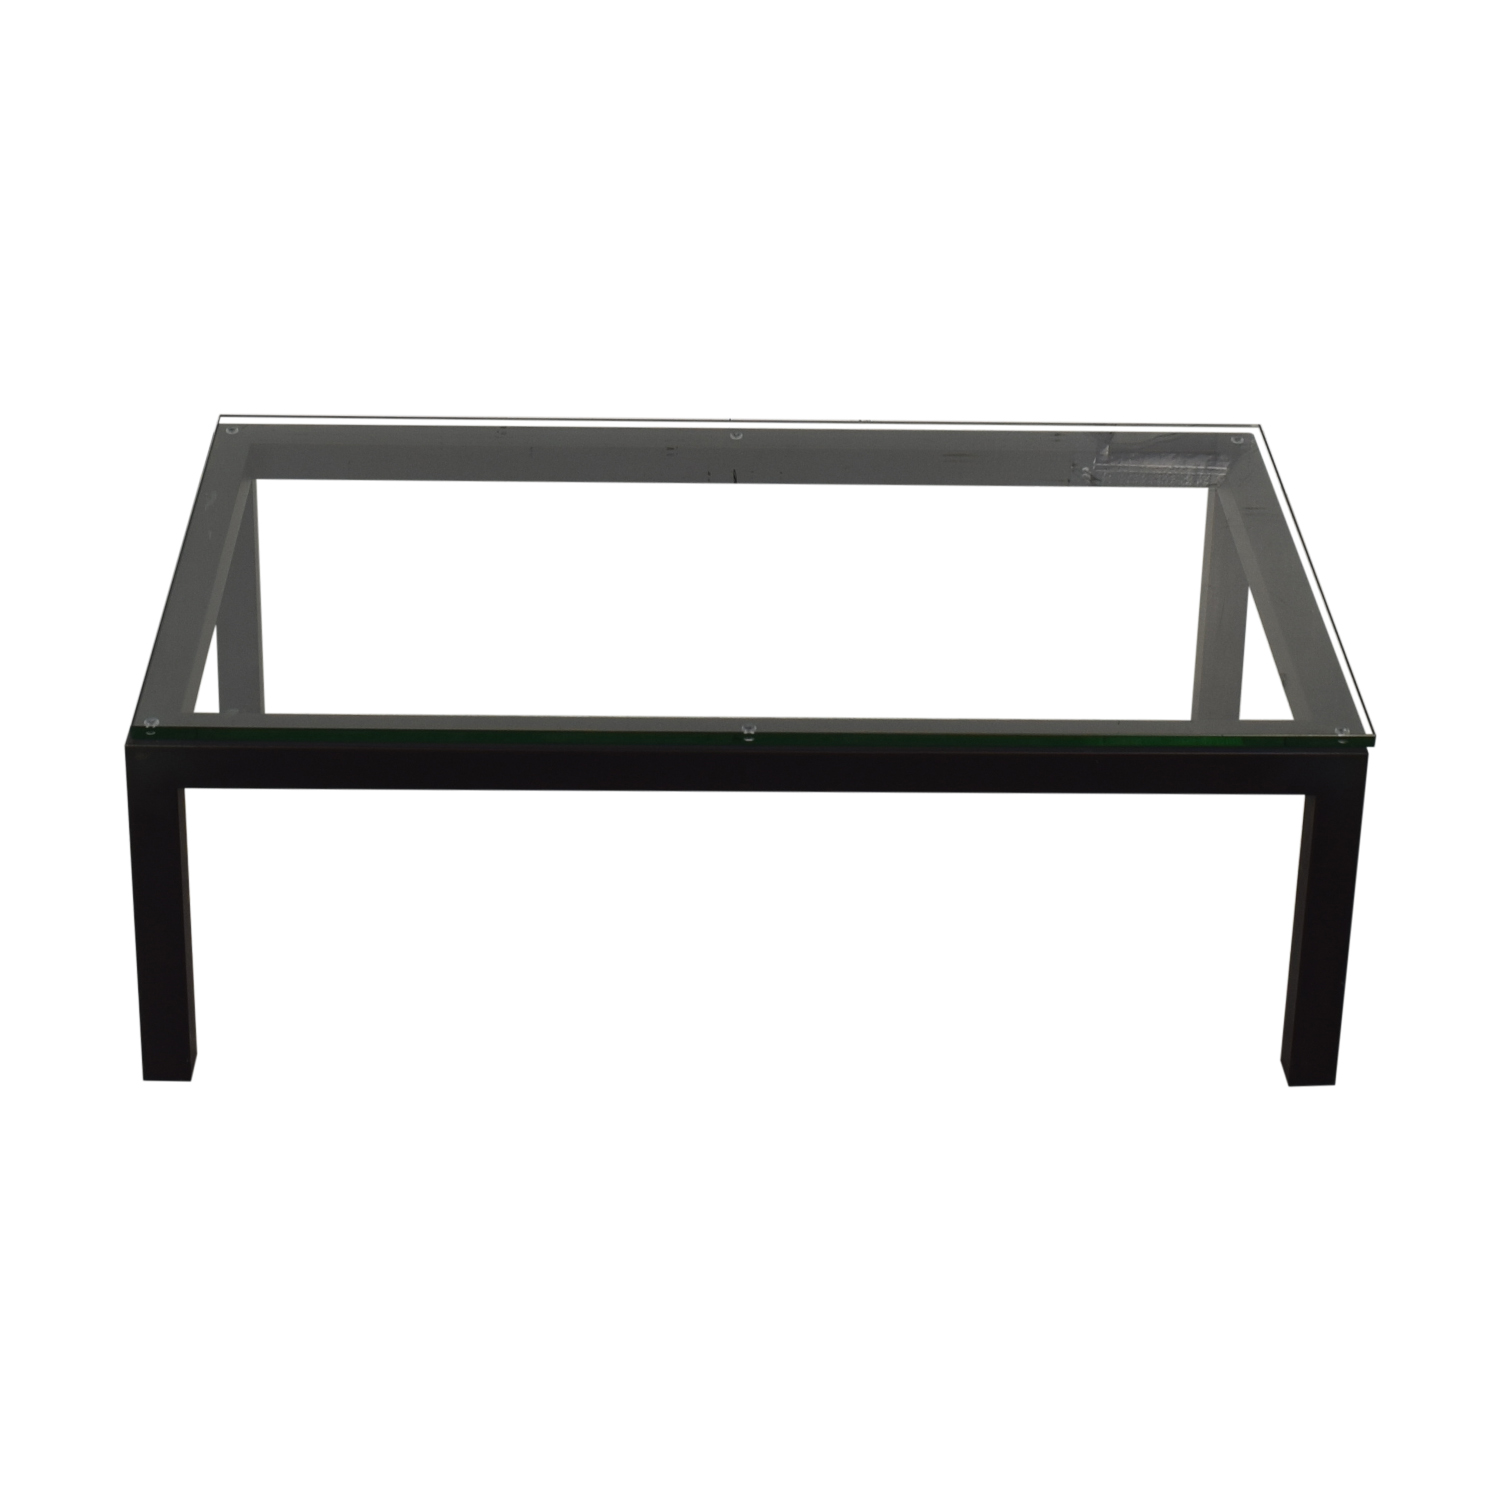 shop Crate & Barrel Crate & Barrel Parsons Clear Glass Top Table online